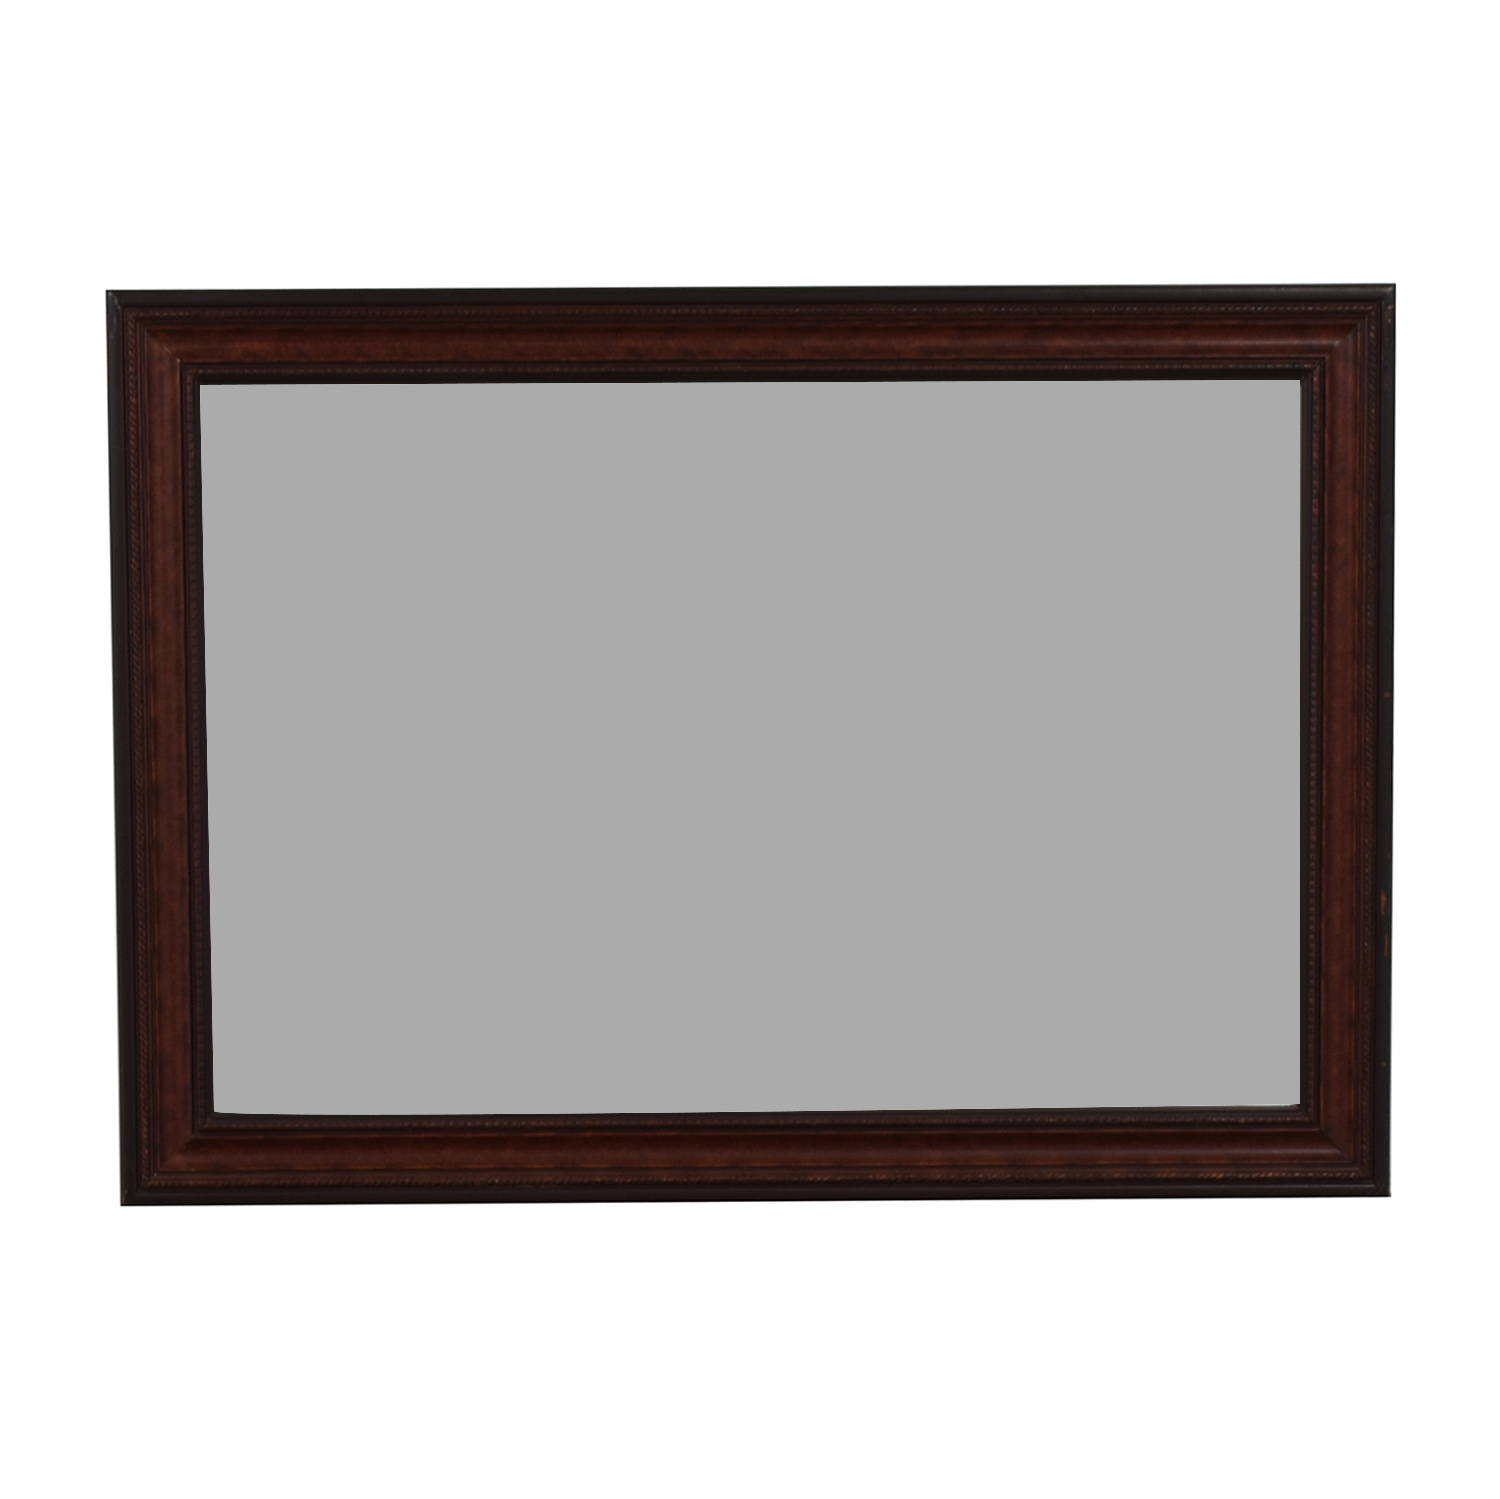 buy Wood Framed Wall Mirror  Mirrors